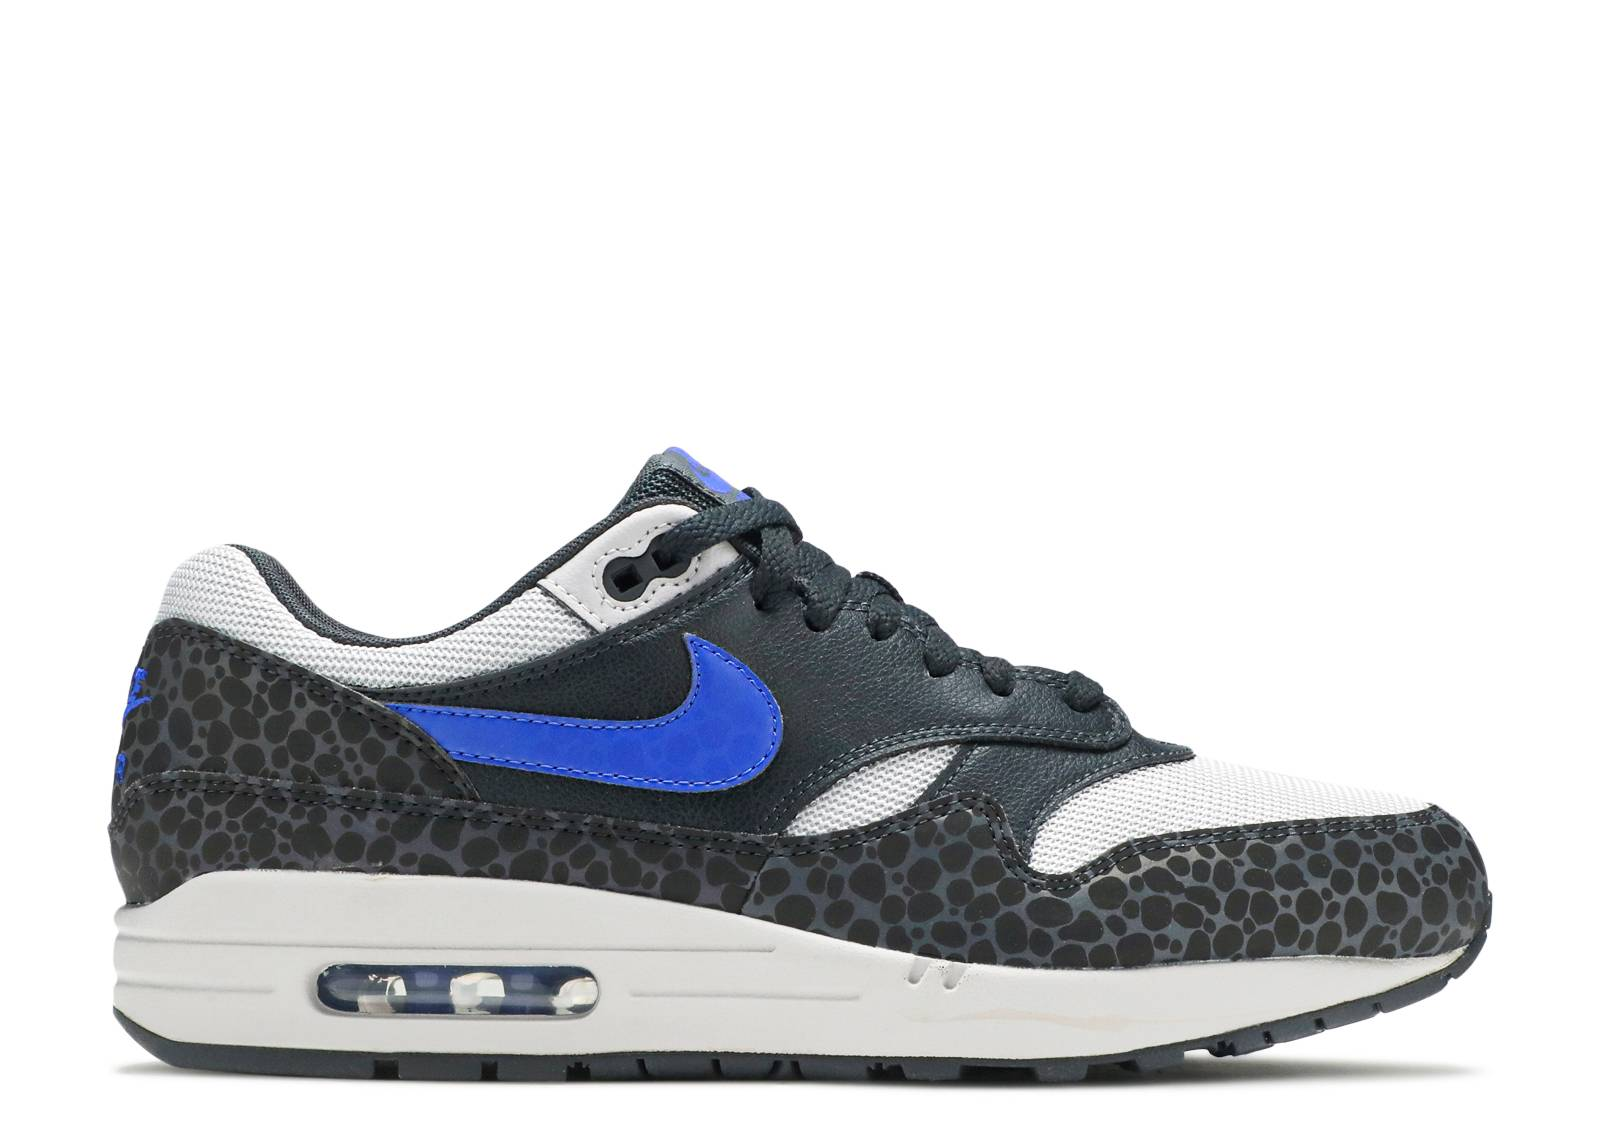 timeless design cfeaf 9123a Nike Air Max 1 Se Reflective